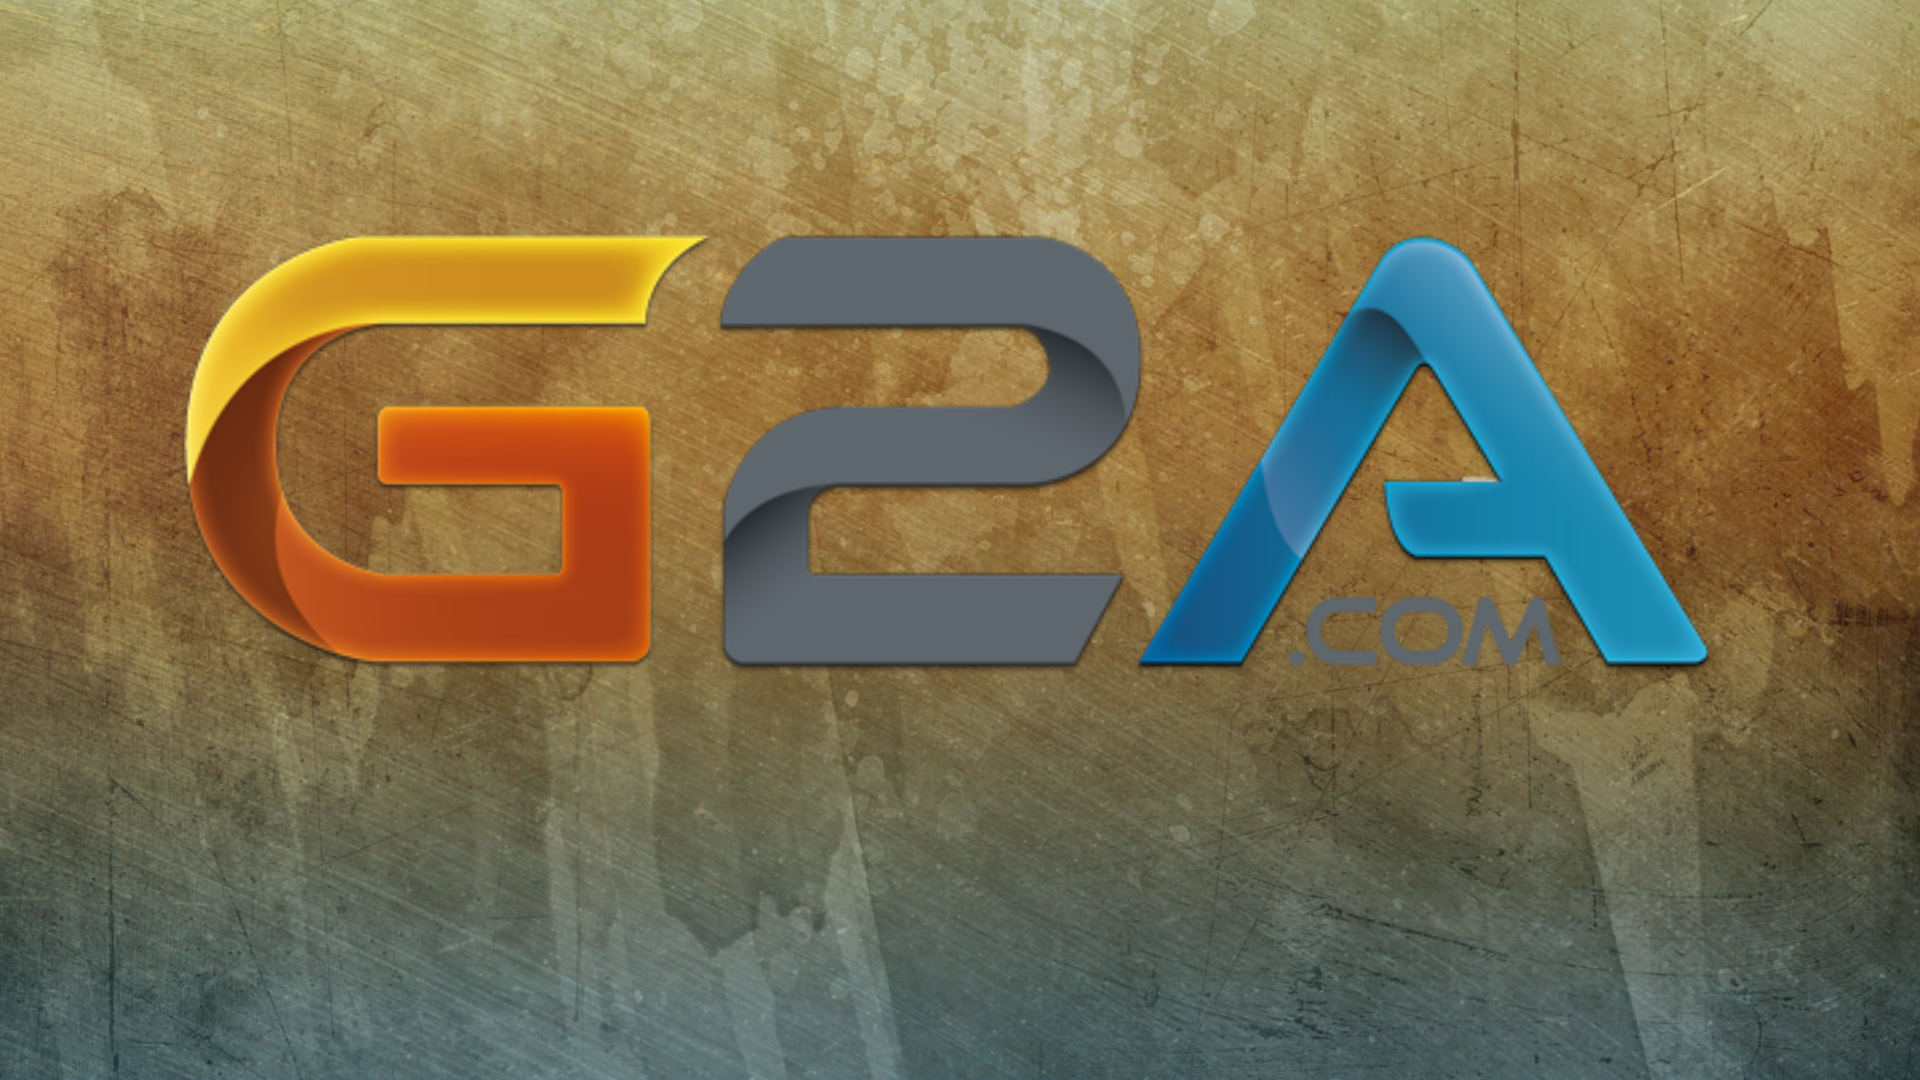 Ultimatum for G2A from Gearbox Software threatens promotional deal